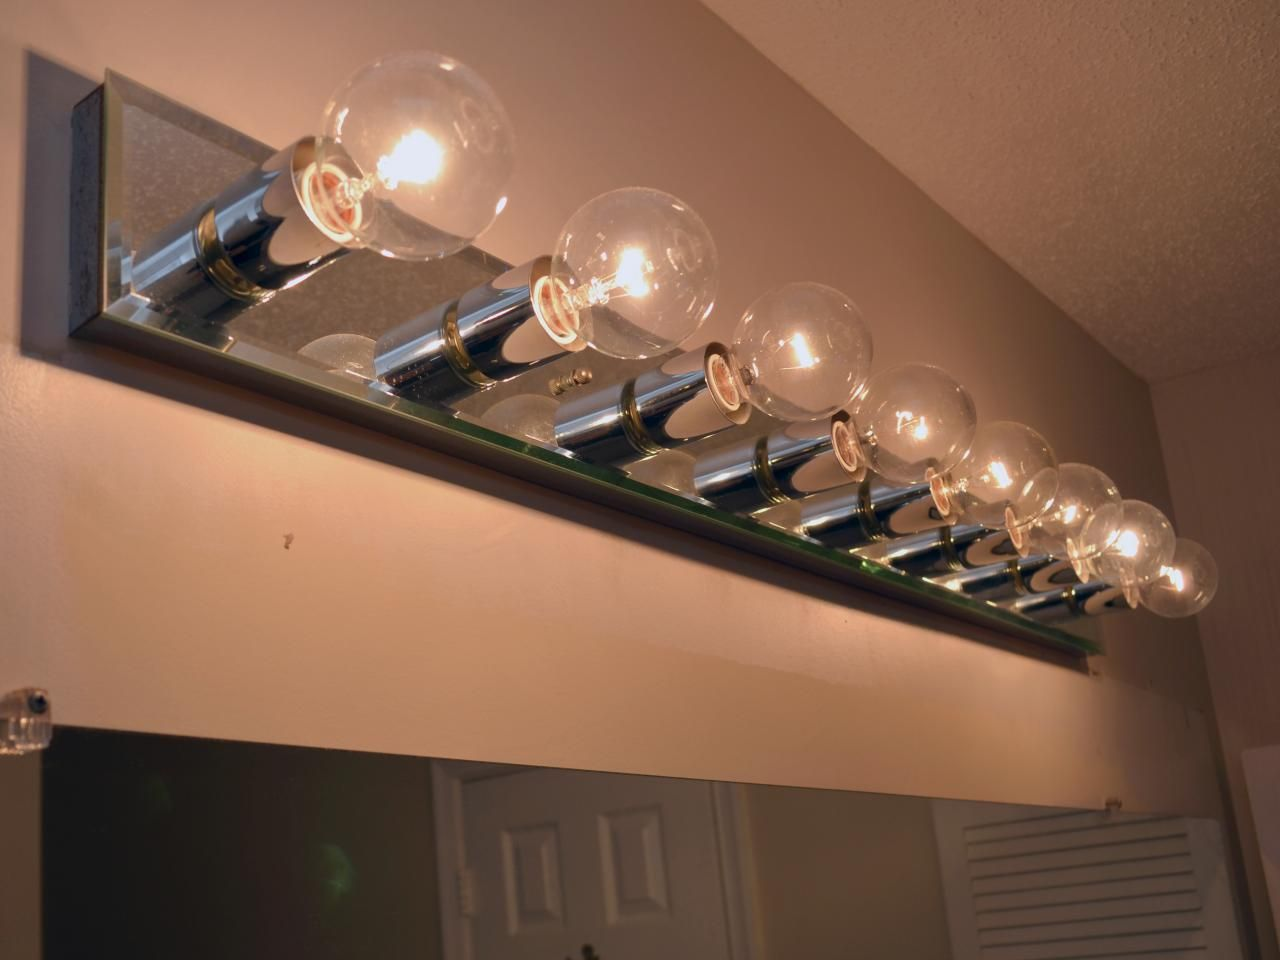 How To Replace A Bathroom Light Fixture Bathroom Light Fixtures - 4 ft bathroom light fixture